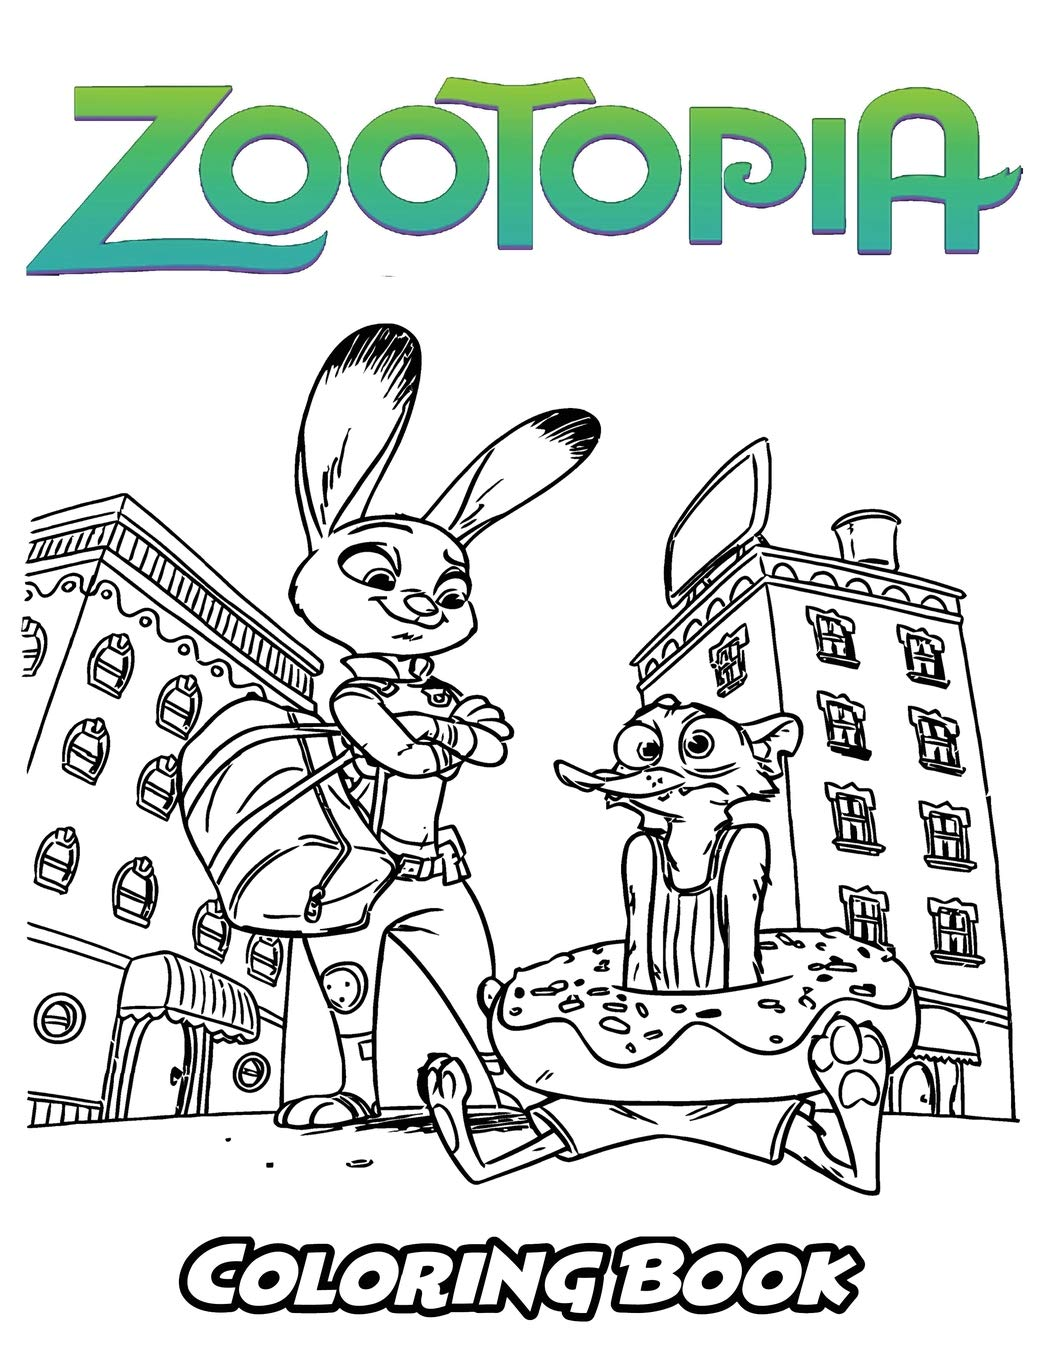 Zootopia coloring book coloring book for kids and adults activity book with fun easy and relaxing coloring pages perfect for children ages 3 5 6 8